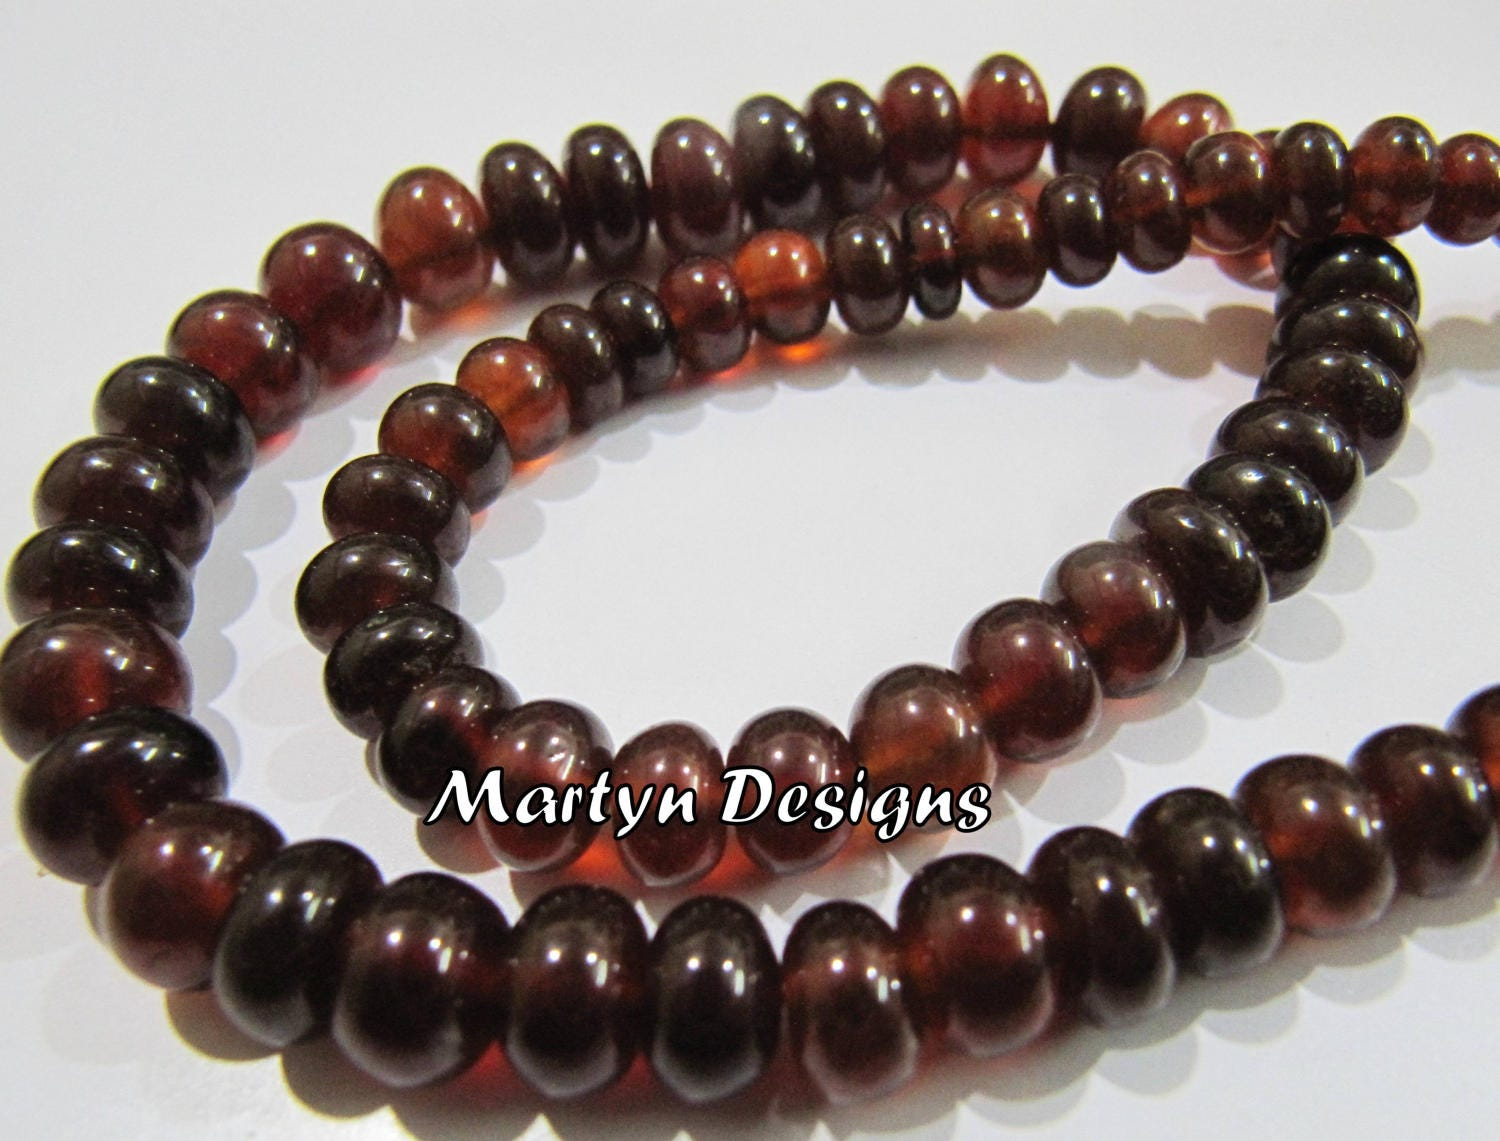 Finest Quality Hessonite Garnet 5-8mm Size Beads Smooth